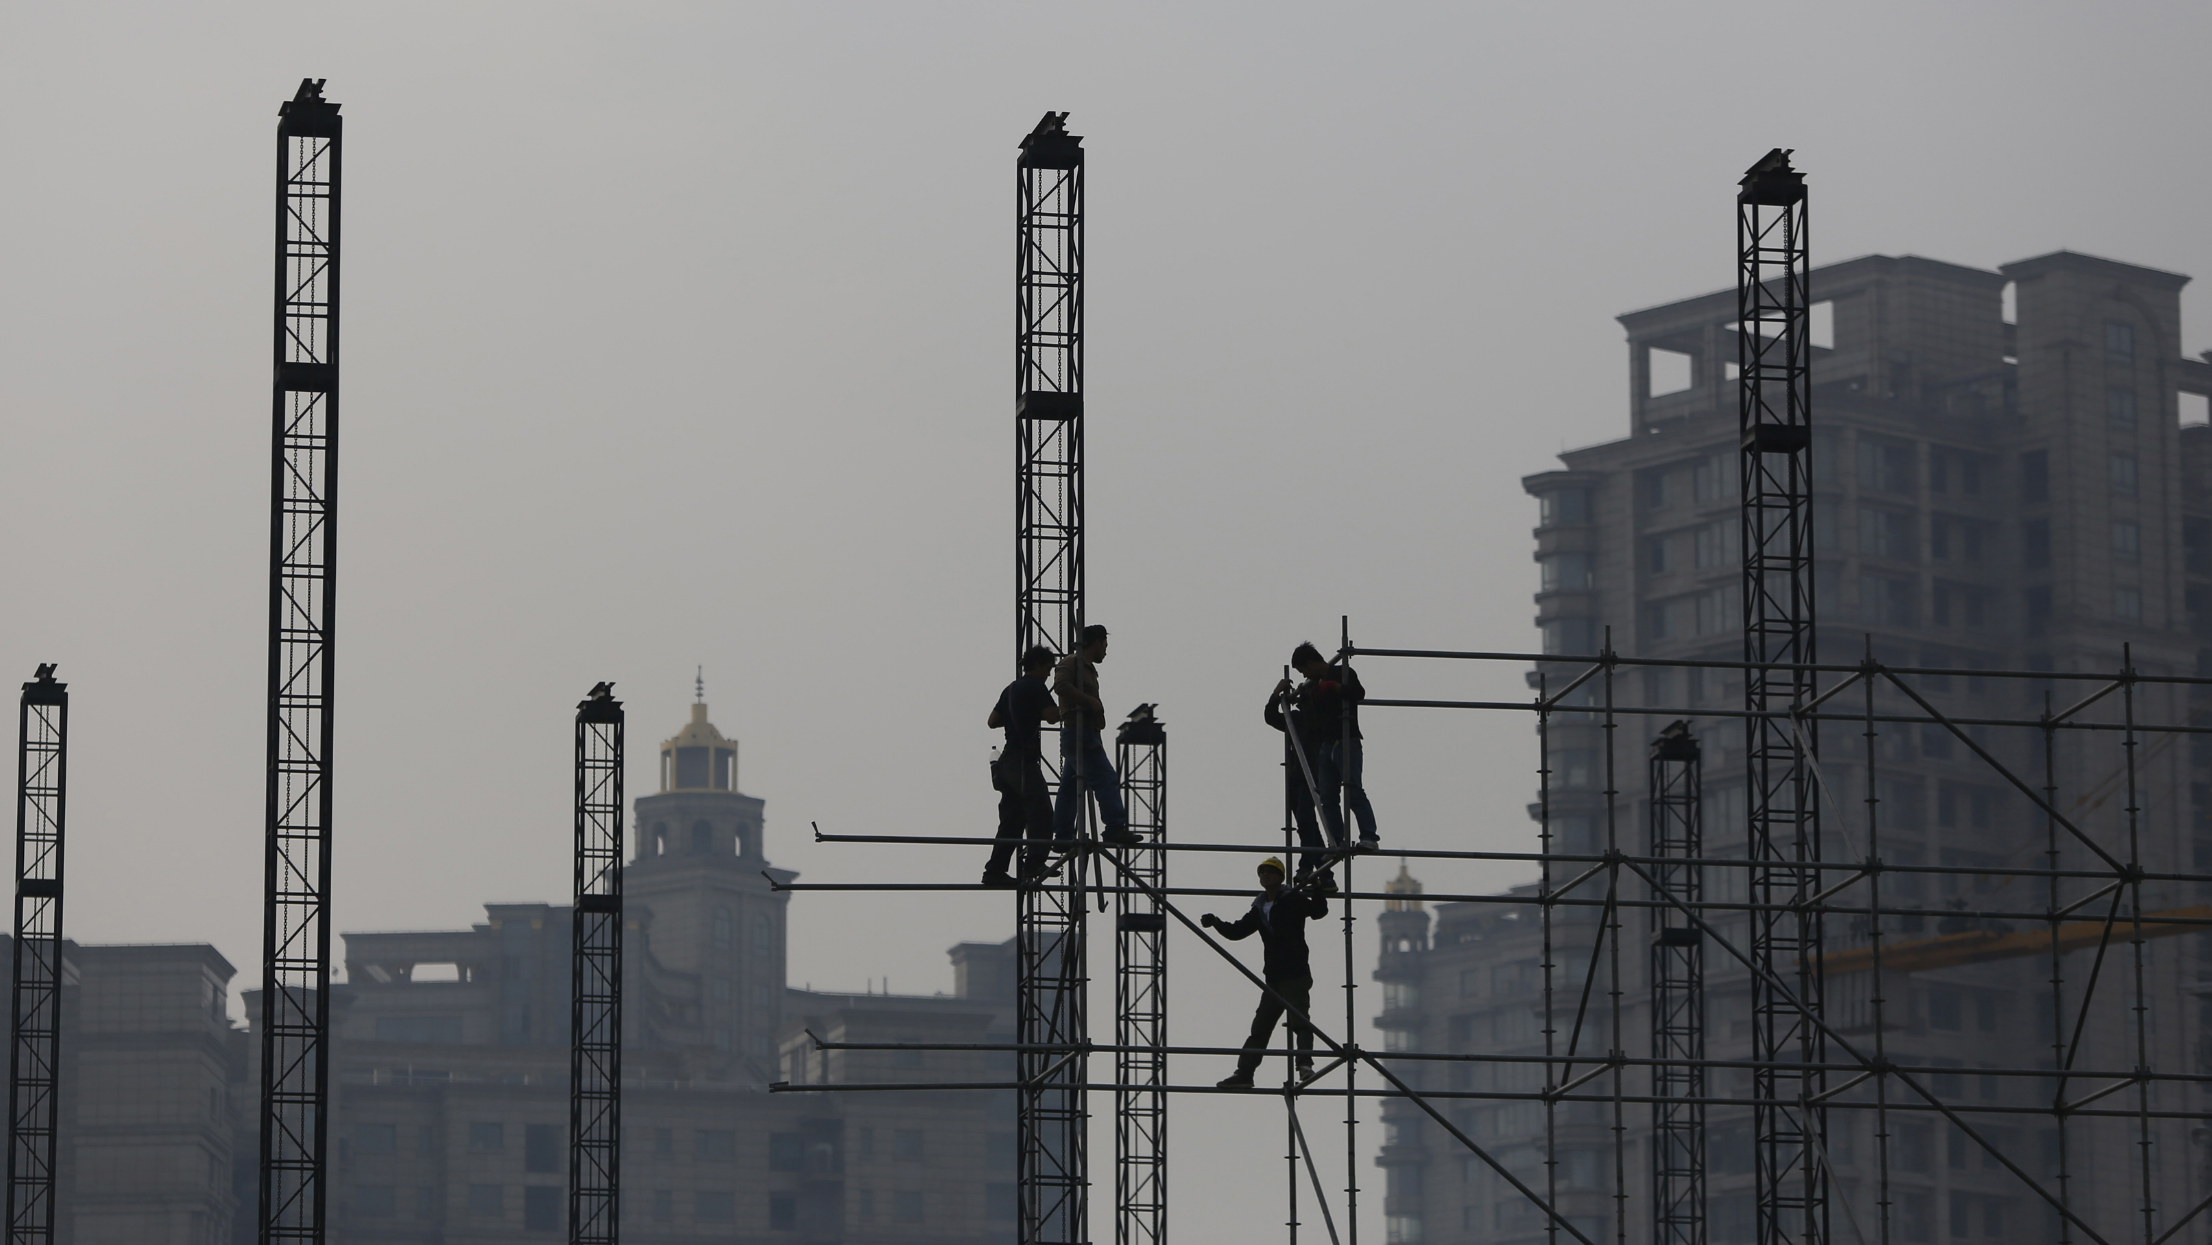 Workers install scaffolding at a construction site in front of residential buildings during a hazy day in Shanghai November 6, 2013. REUTERS/Aly Song